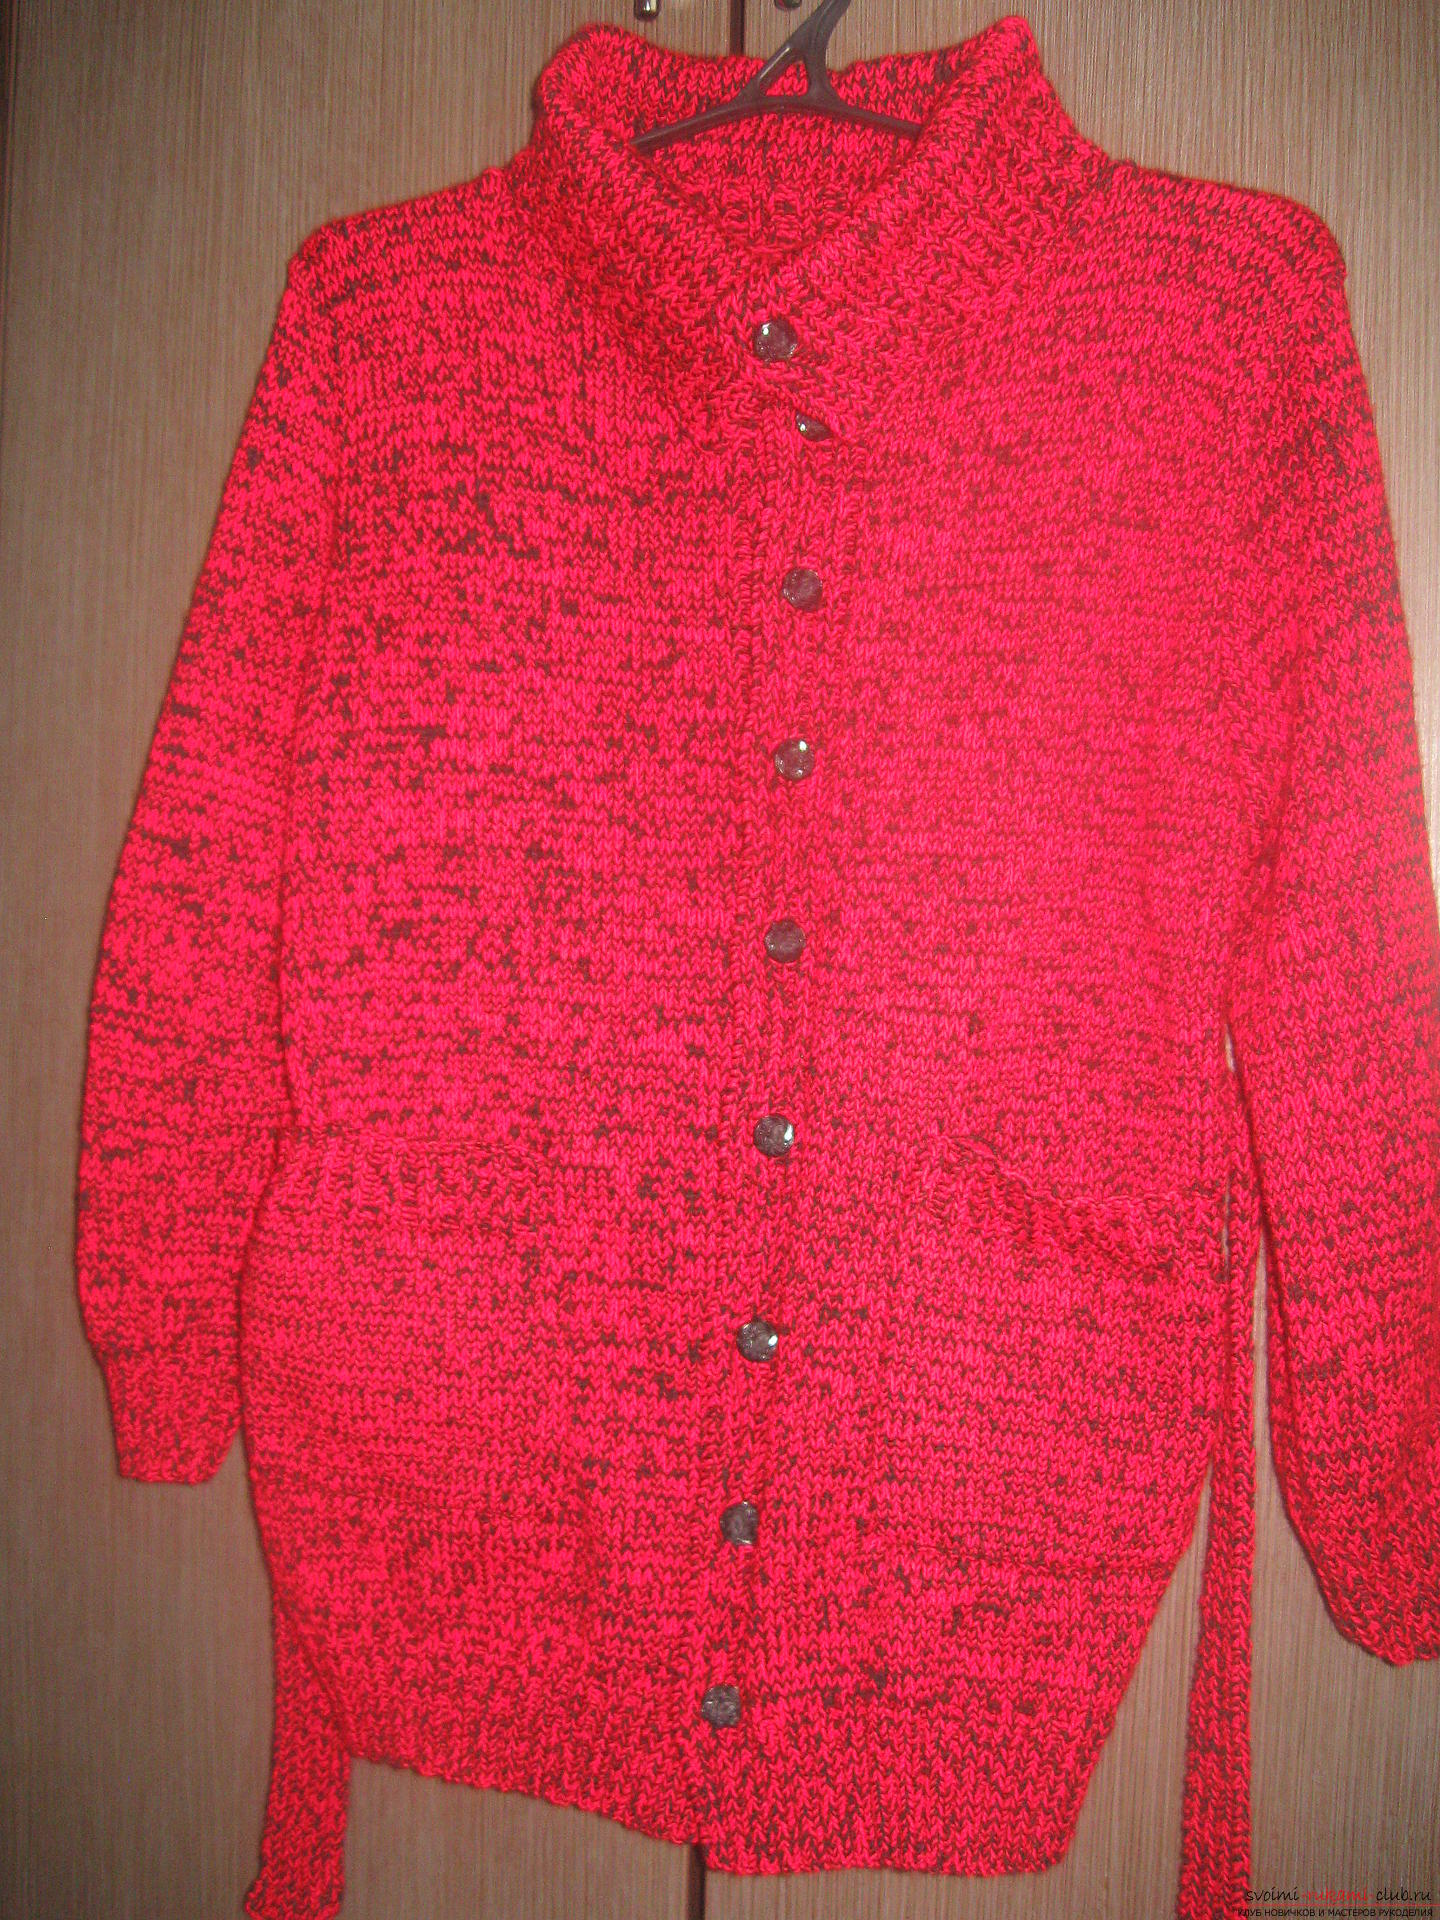 The jacket is tied with knitting needles in black and red. Picture №3